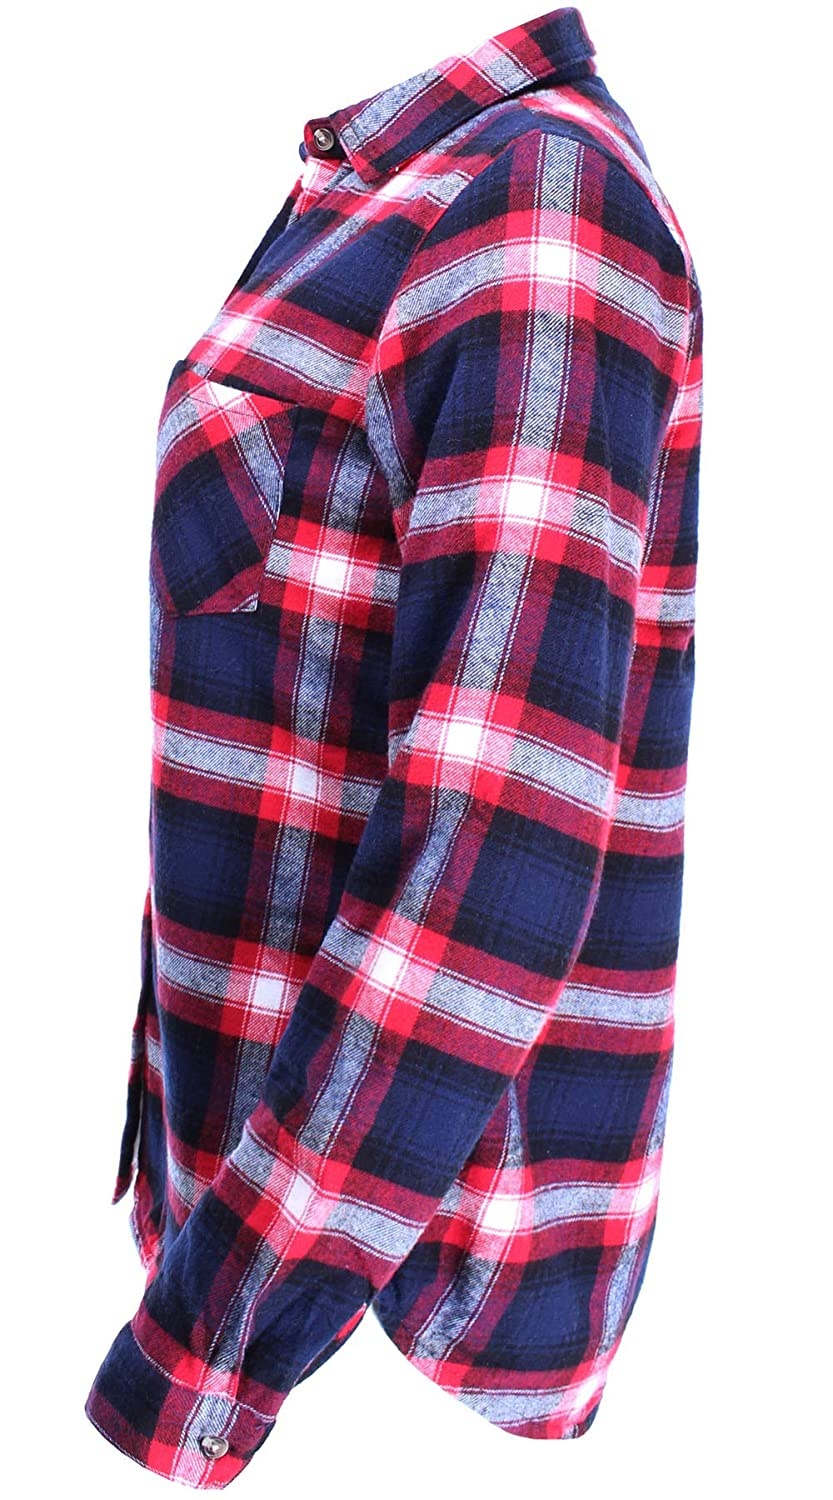 408ae838 Ladies' Code Women's Winter Flannel Plaid Button Down Top with Sherpa  Fleece Lining LCTL014 larger image